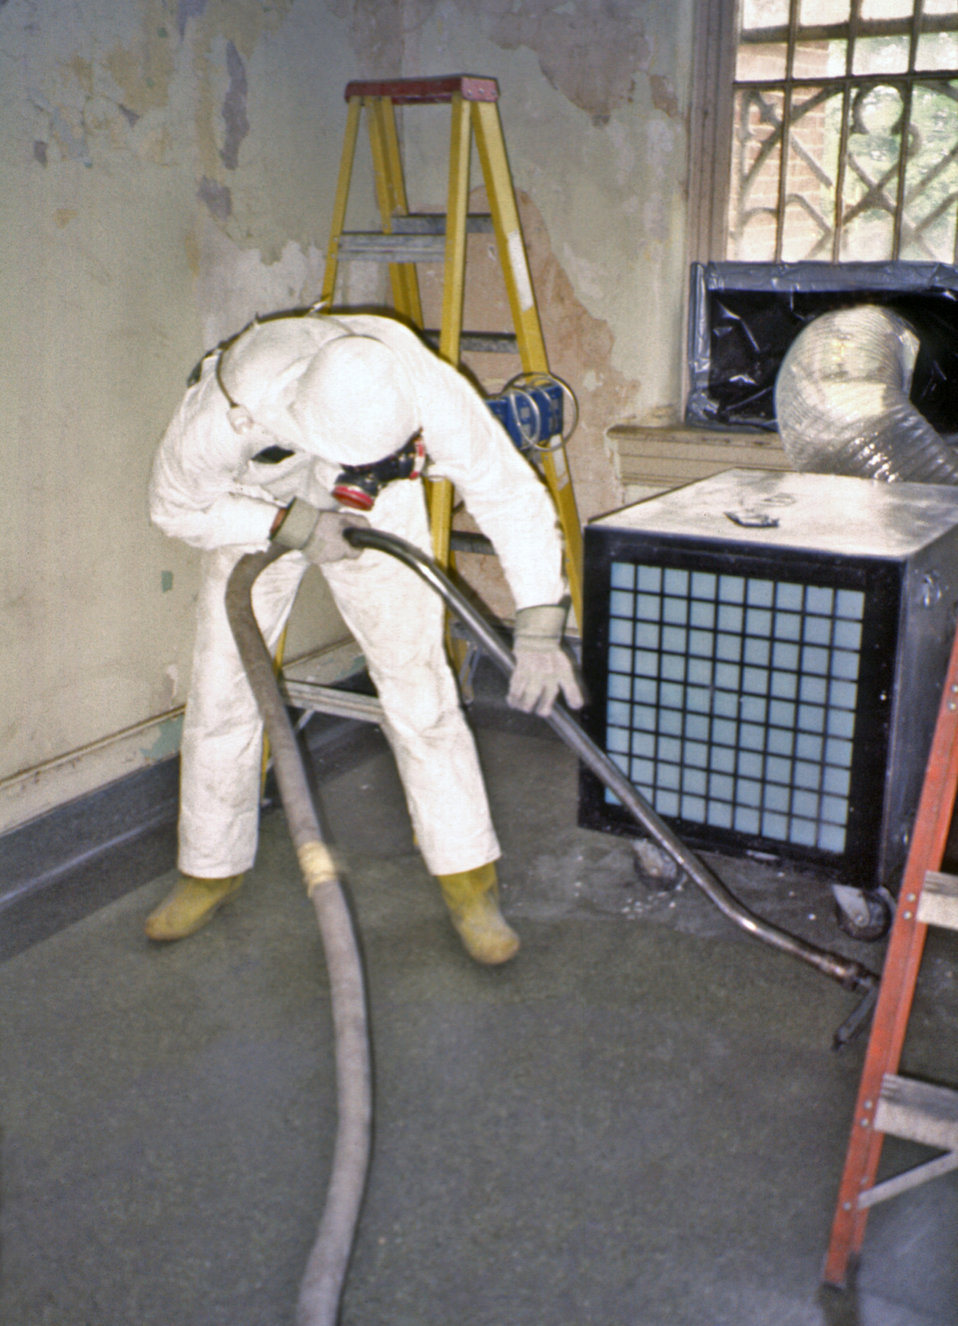 This 1991 photograph depicted a worker vacuuming lead-based paint debris with a high-efficiency vacuum equipped with a proper air filter abl